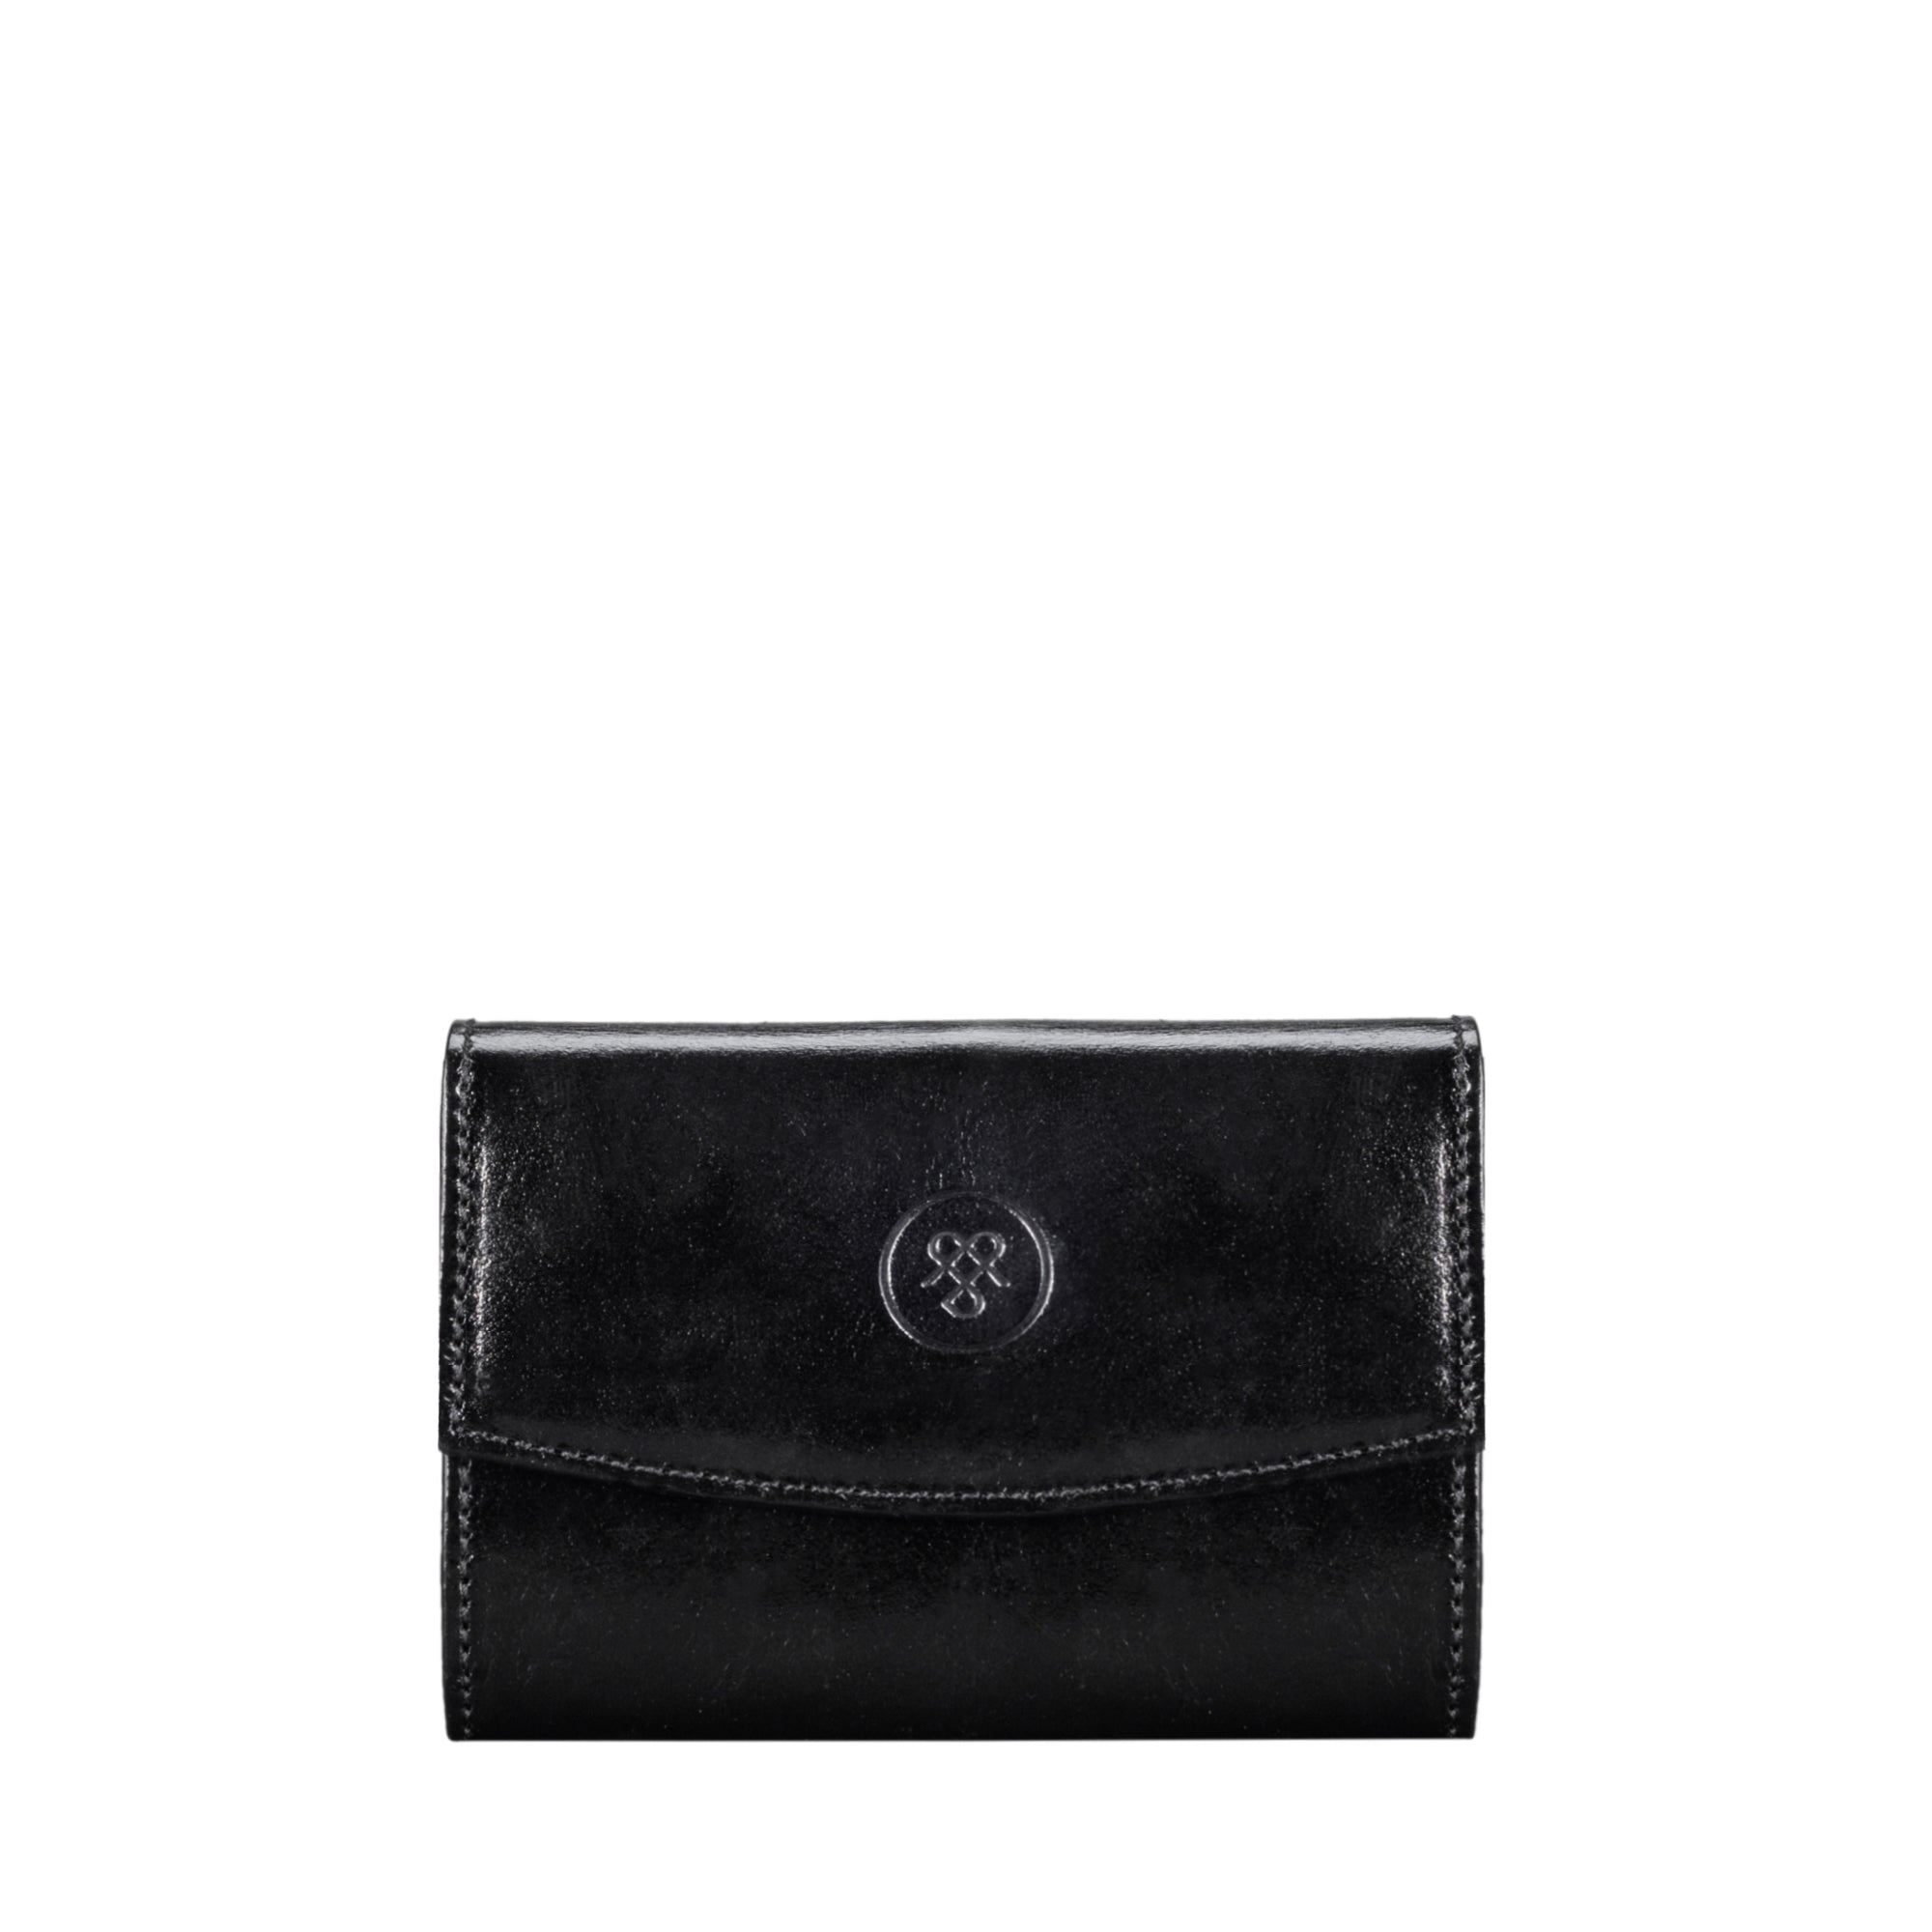 Image 1 of the 'Fontanelle' Compact Black Veg-Tanned Leather Purse